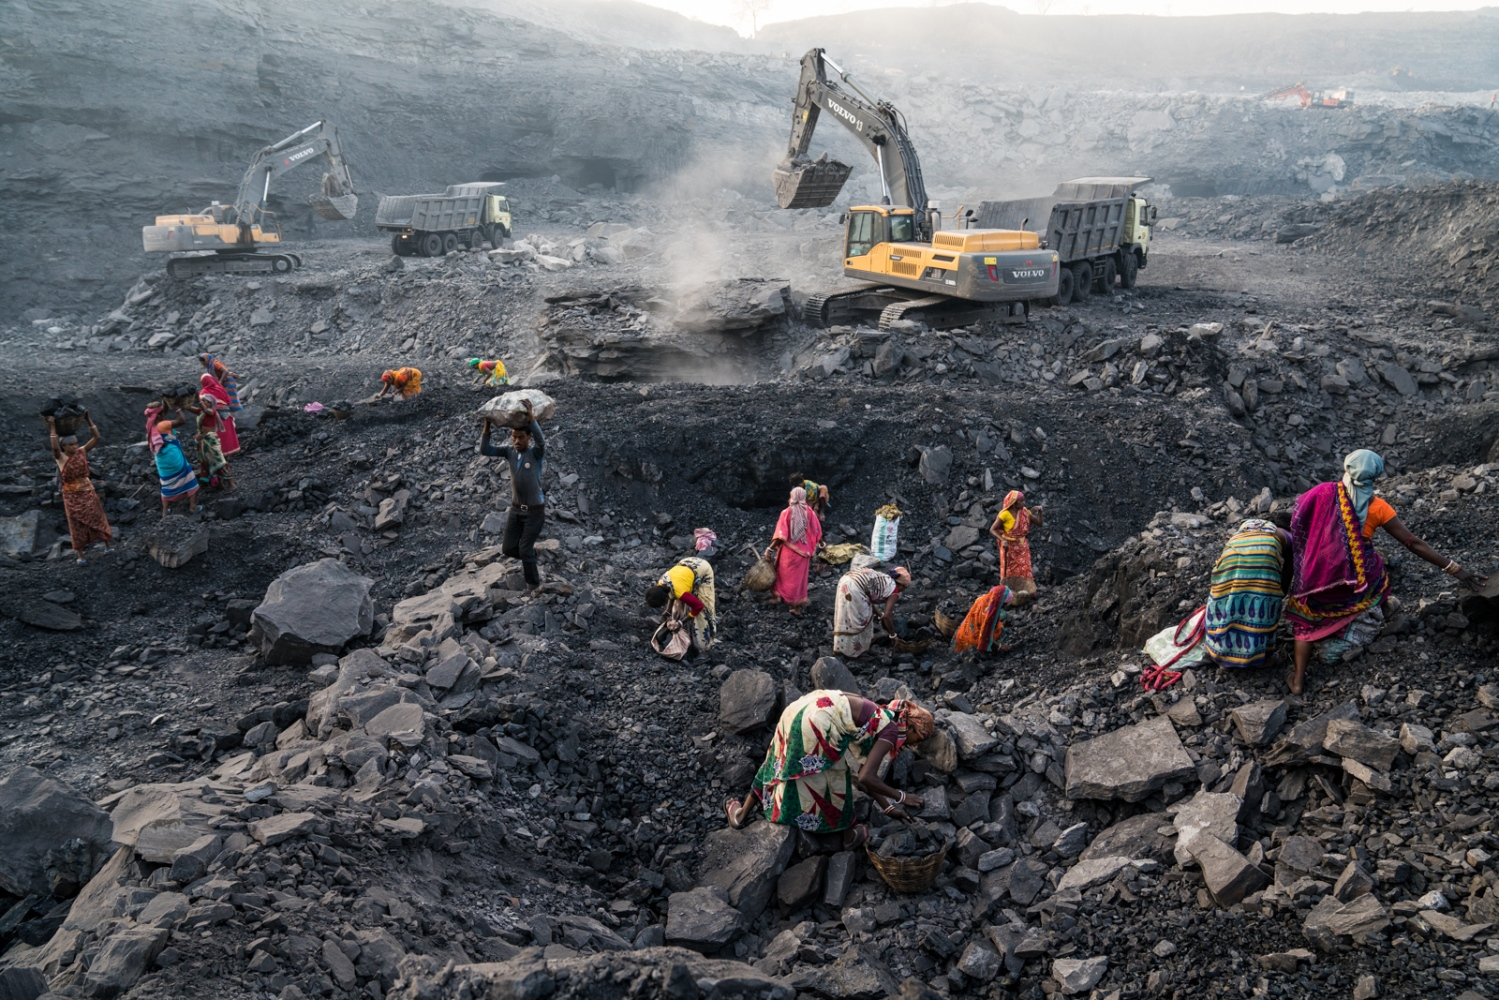 Women scavenge for coal to sell on the black market under extremely dangerous conditions working alongside heavy machinery.